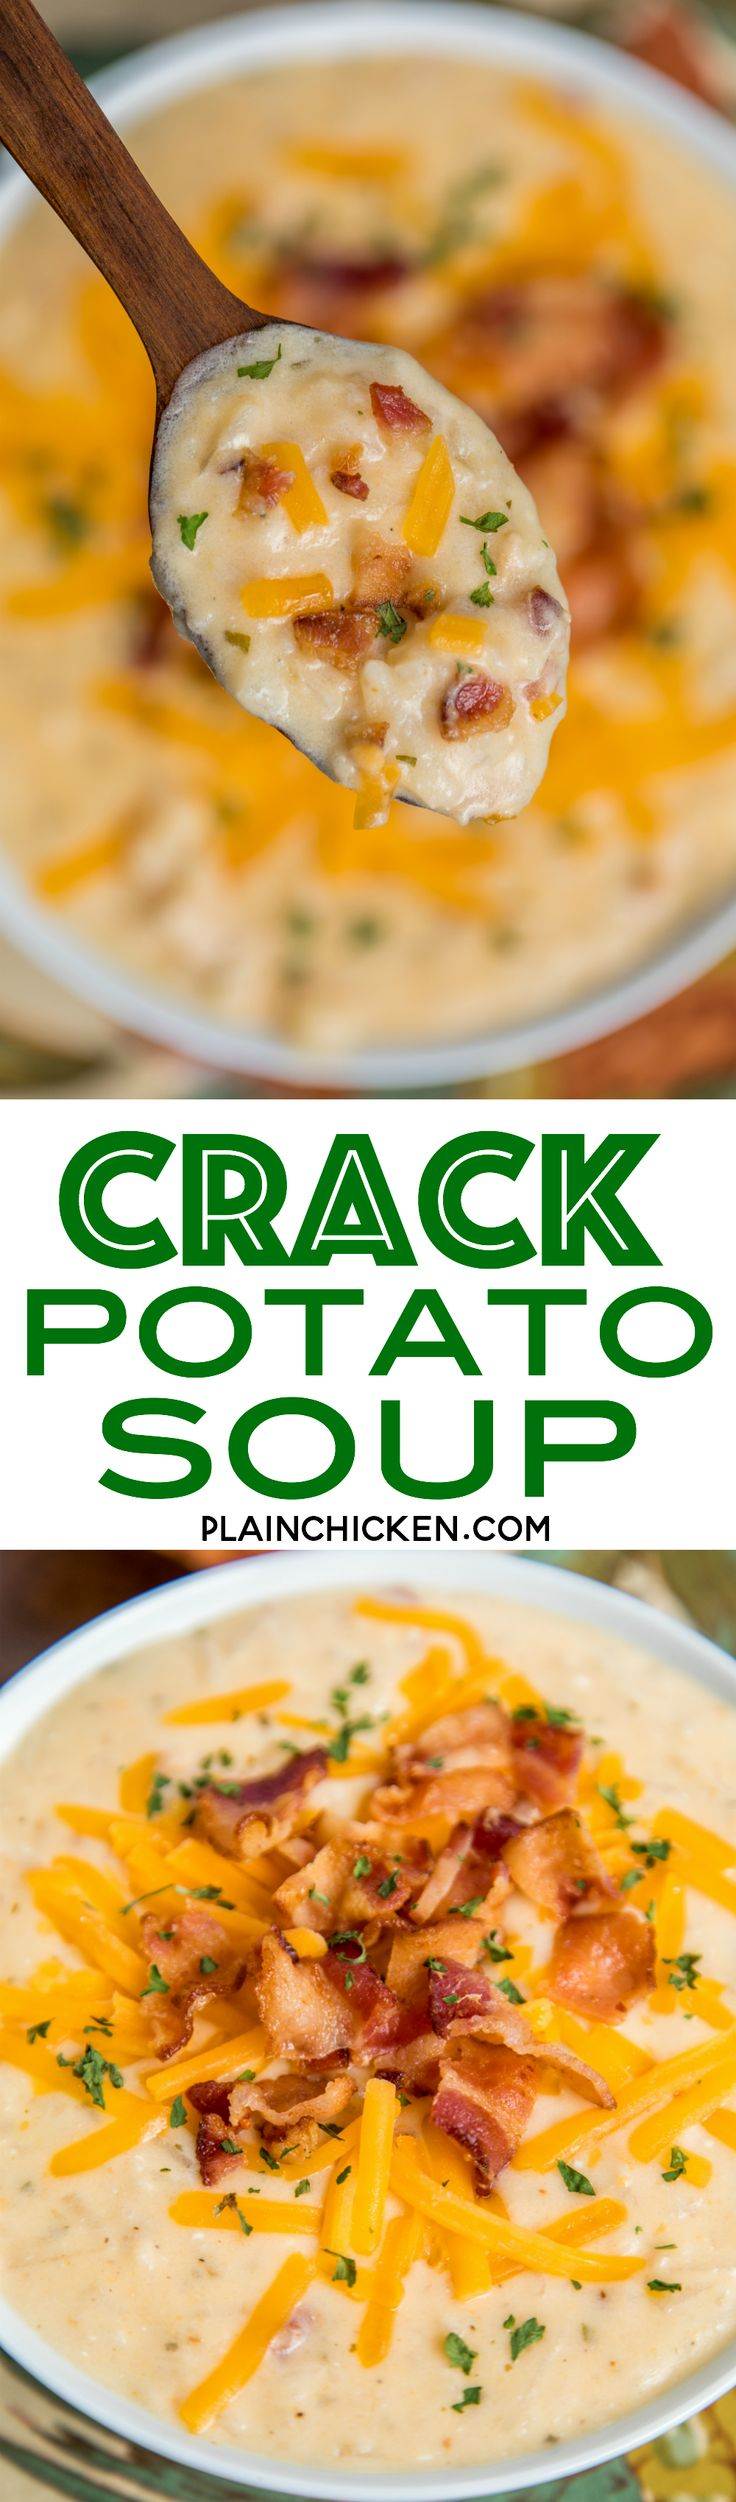 Slow Cooker Crack Potato Soup - potato soup loaded with cheddar, bacon and ranch. Frozen hash browns, cream of chicken soup, chicken broth, cheddar, bacon, ranch, cream cheese. All you need is some cornbread or biscuits and dinner is done!!!